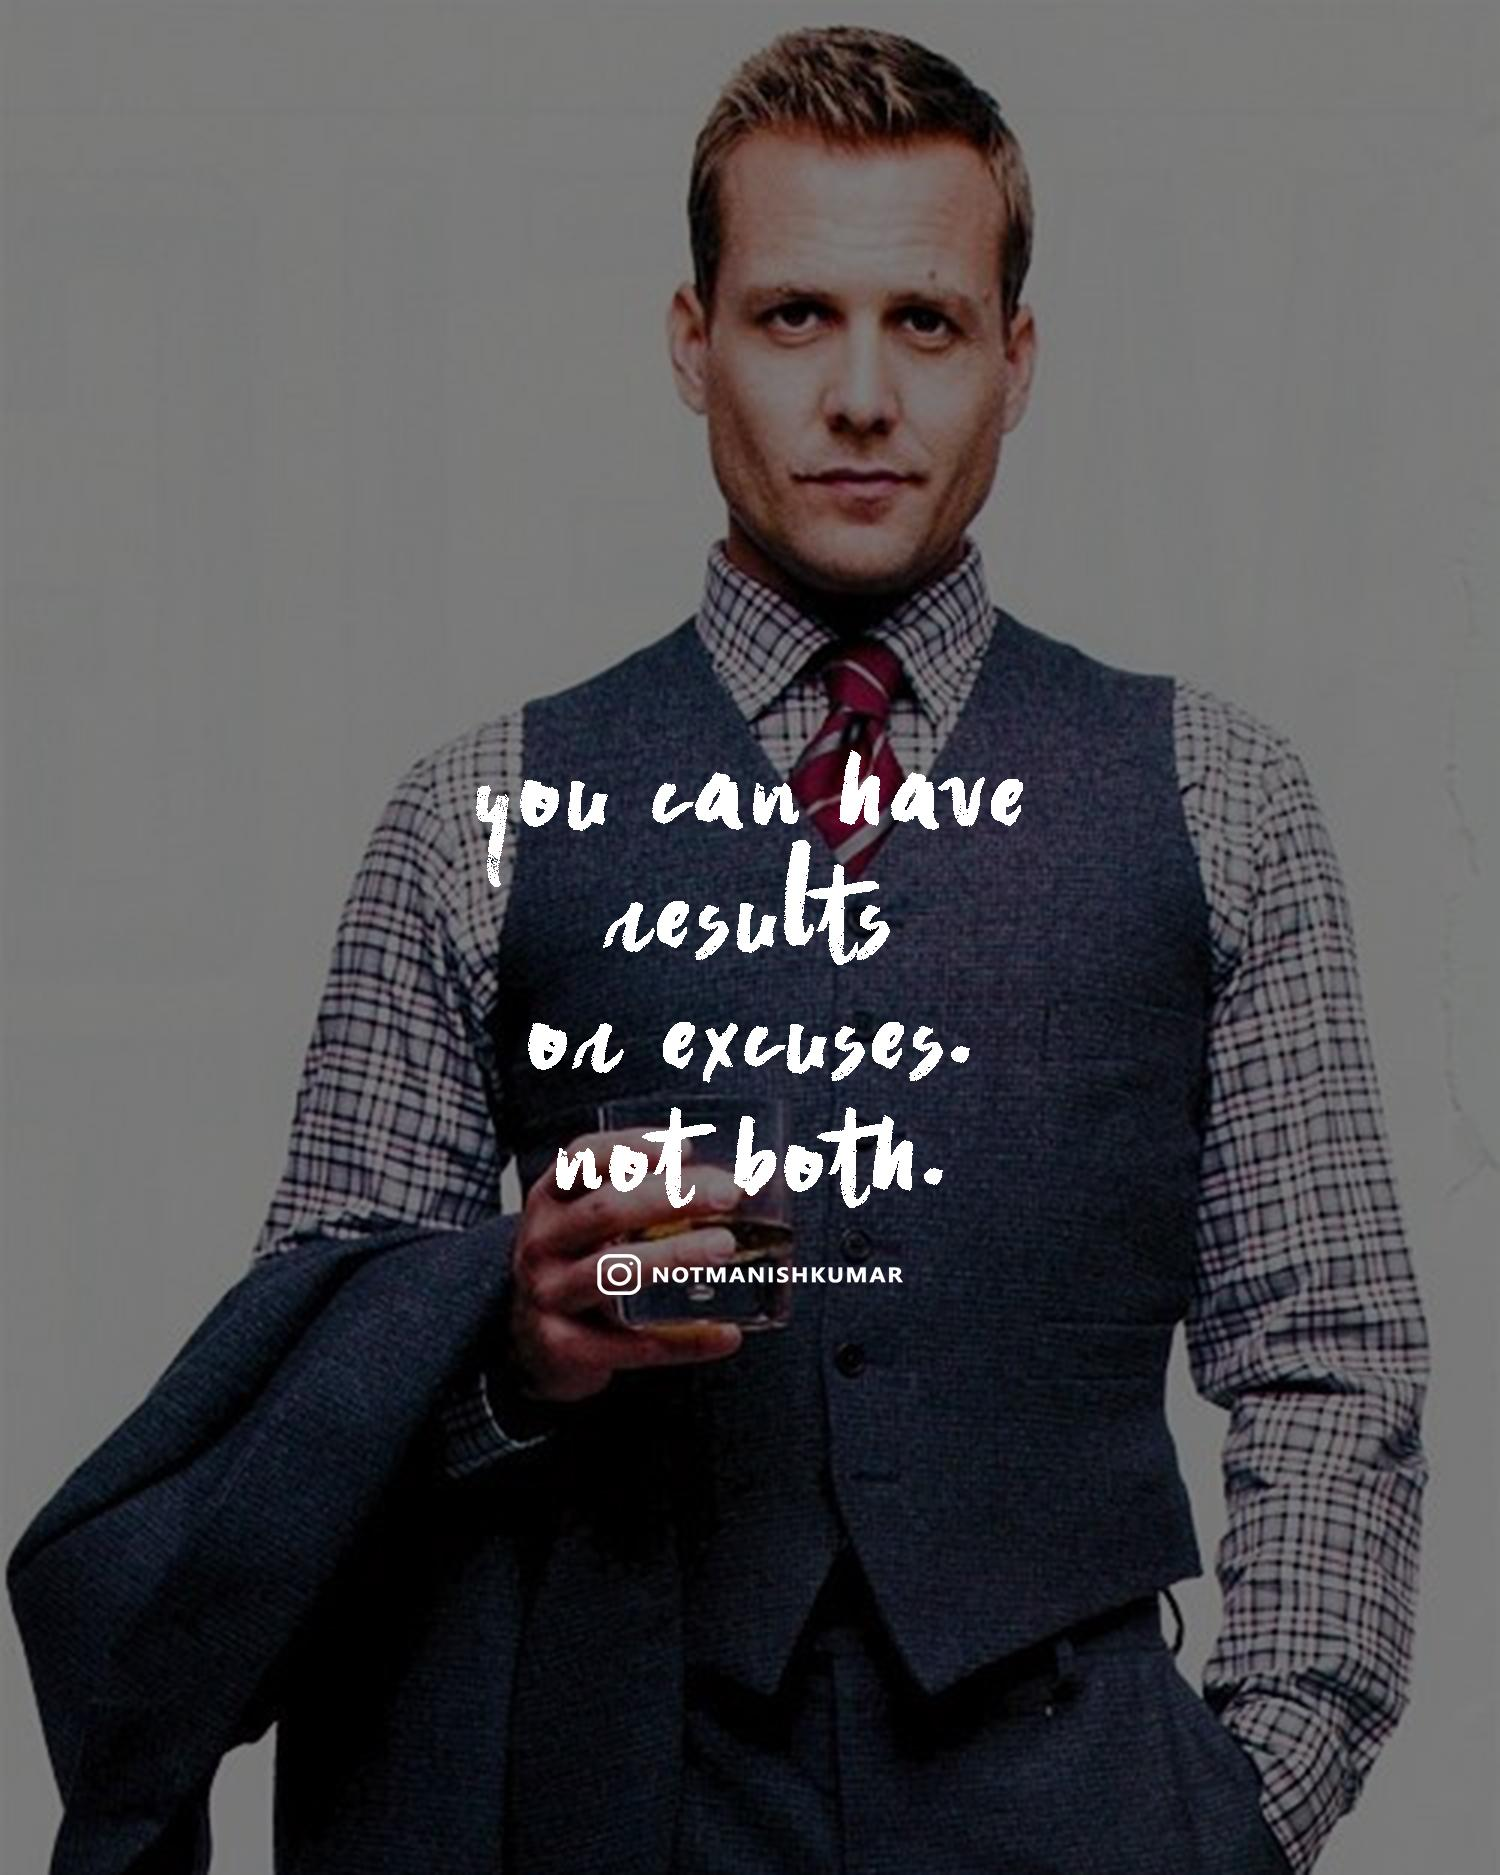 [Image] You can have results or excuses. Not both.